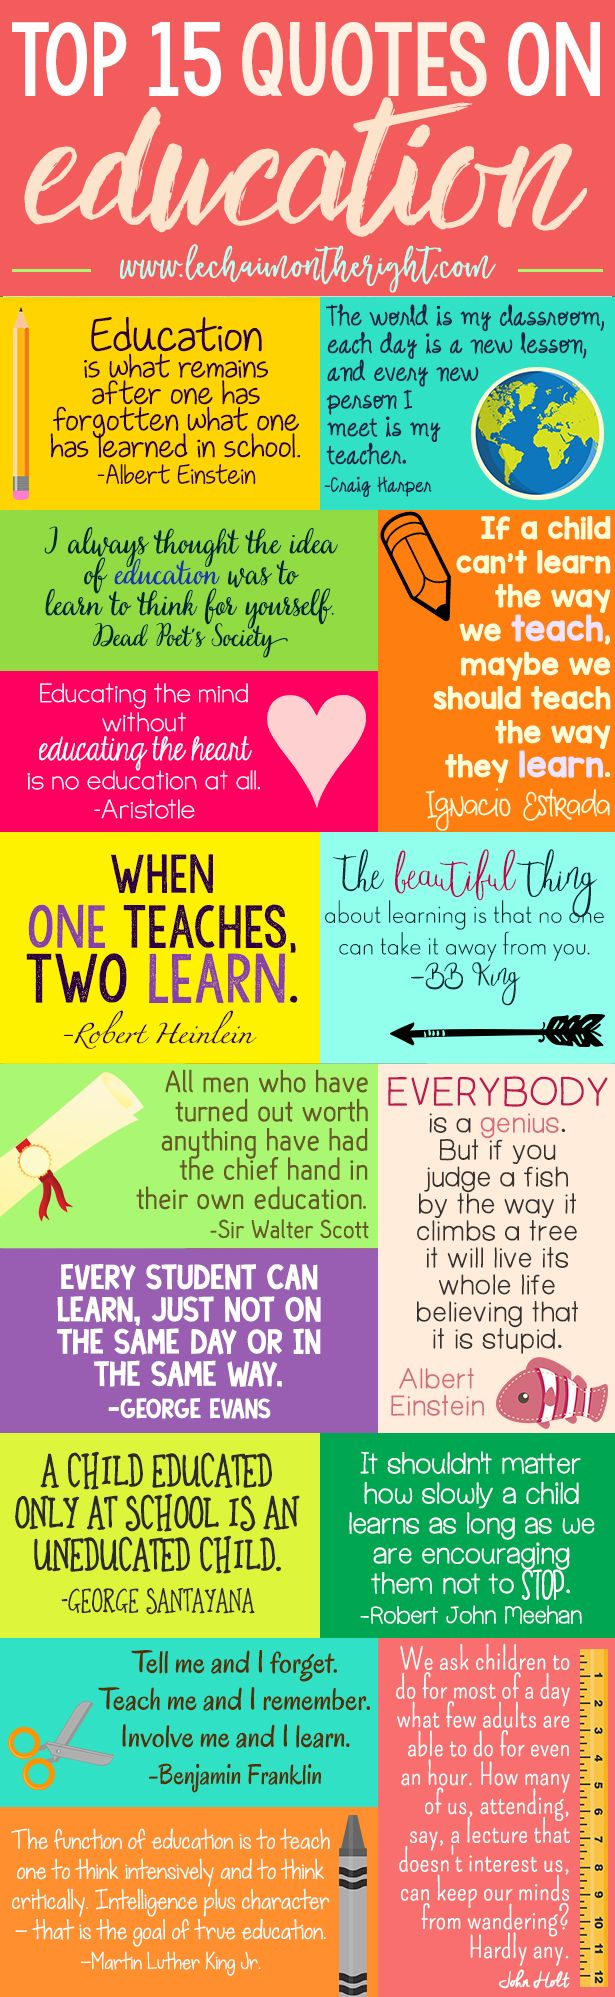 Top 15 Quotes on Education (Top Quotes Ideas)